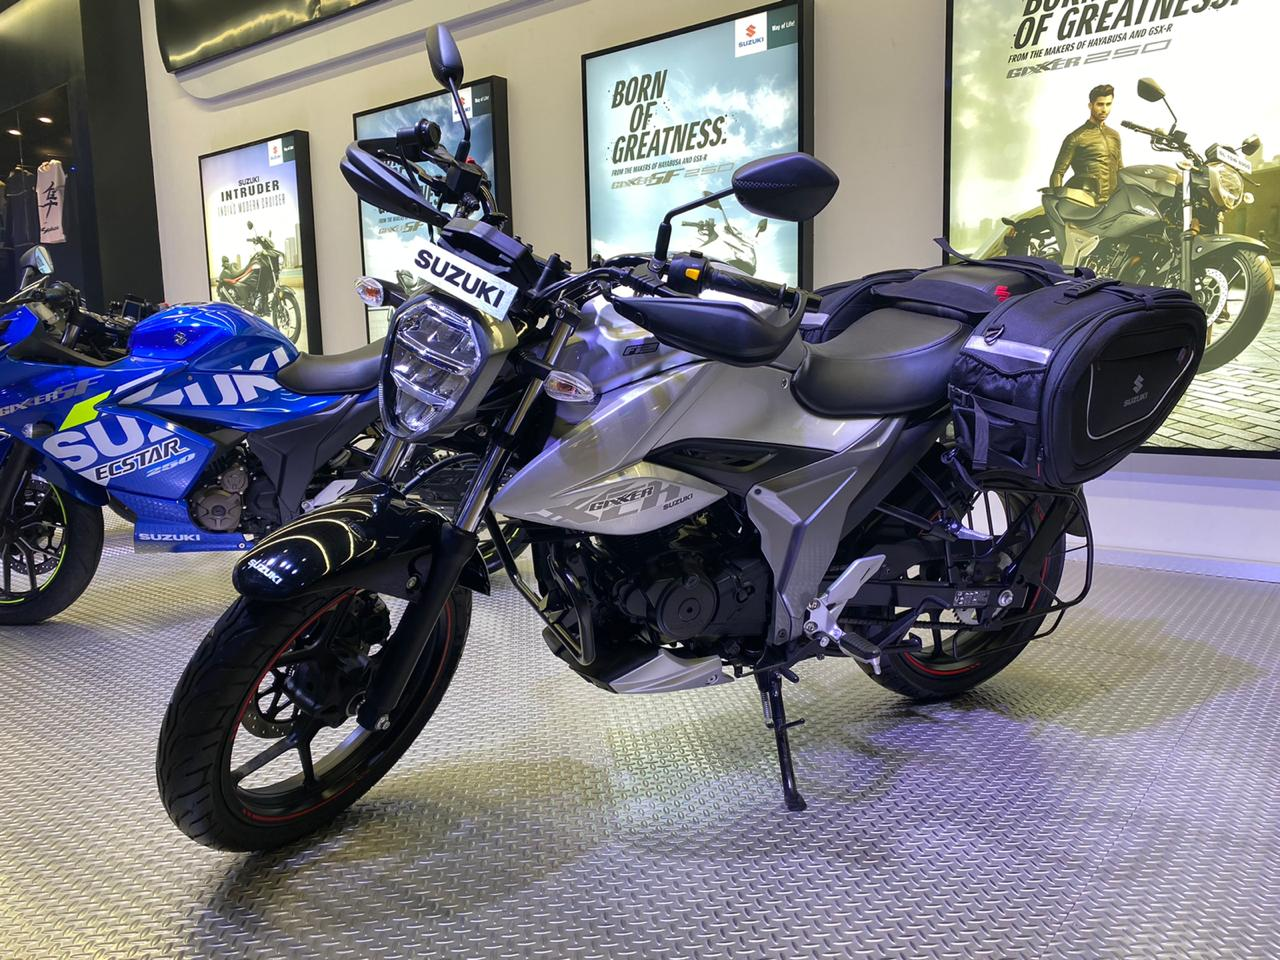 Suzuki Gixxer BS6 Unveiled At Auto Expo 2020